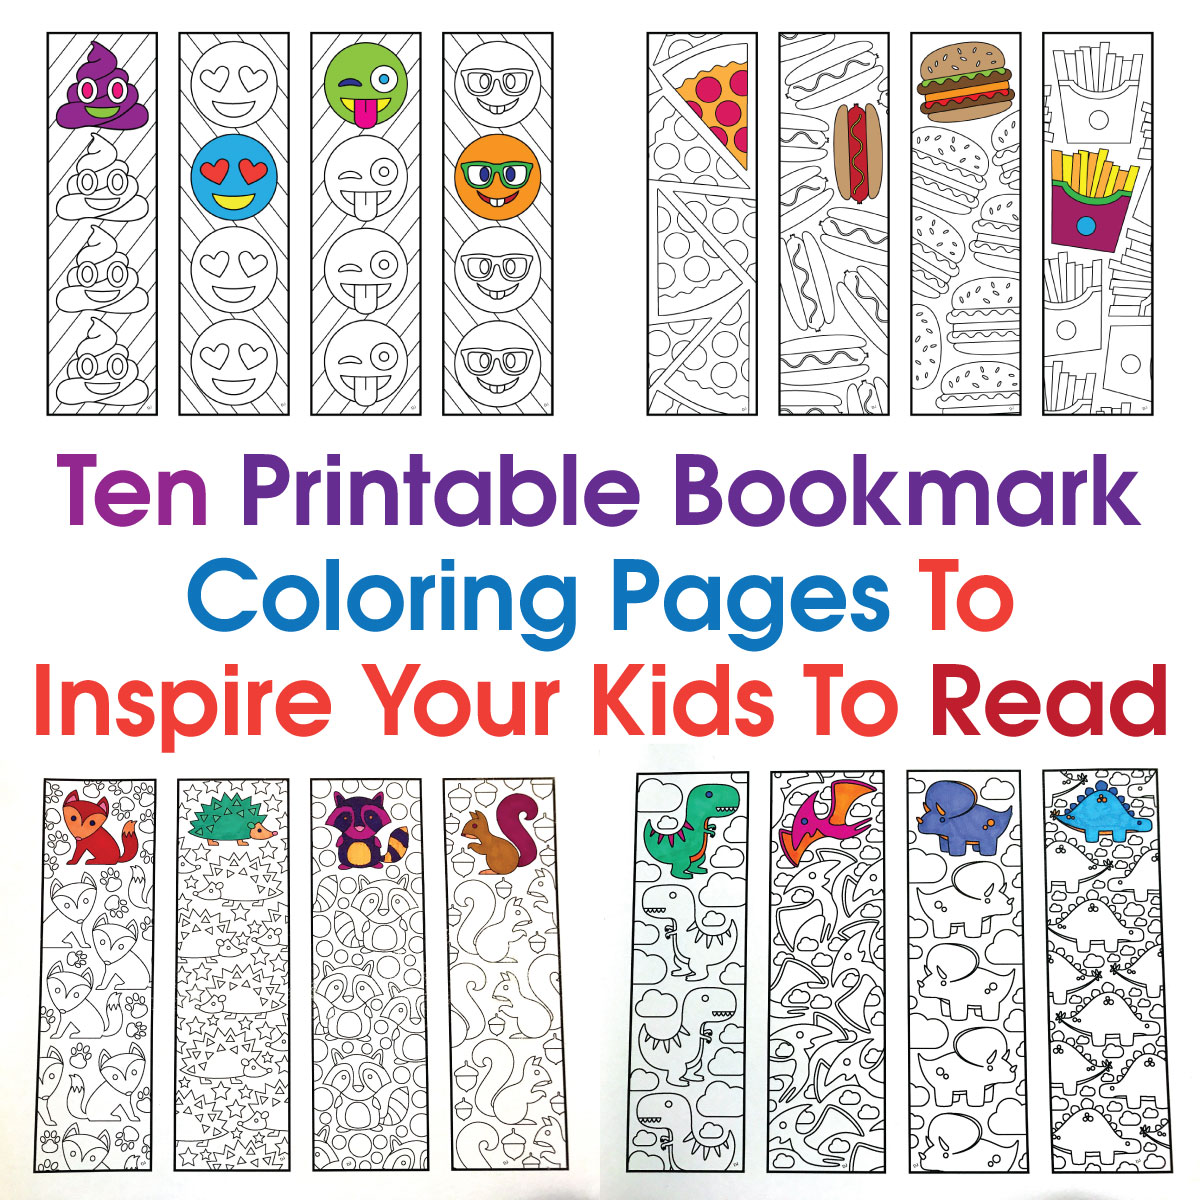 image relating to Printable Bookmarks for Kids called 10 Printable Bookmark Coloring Webpages In the direction of Motivate Your Young children